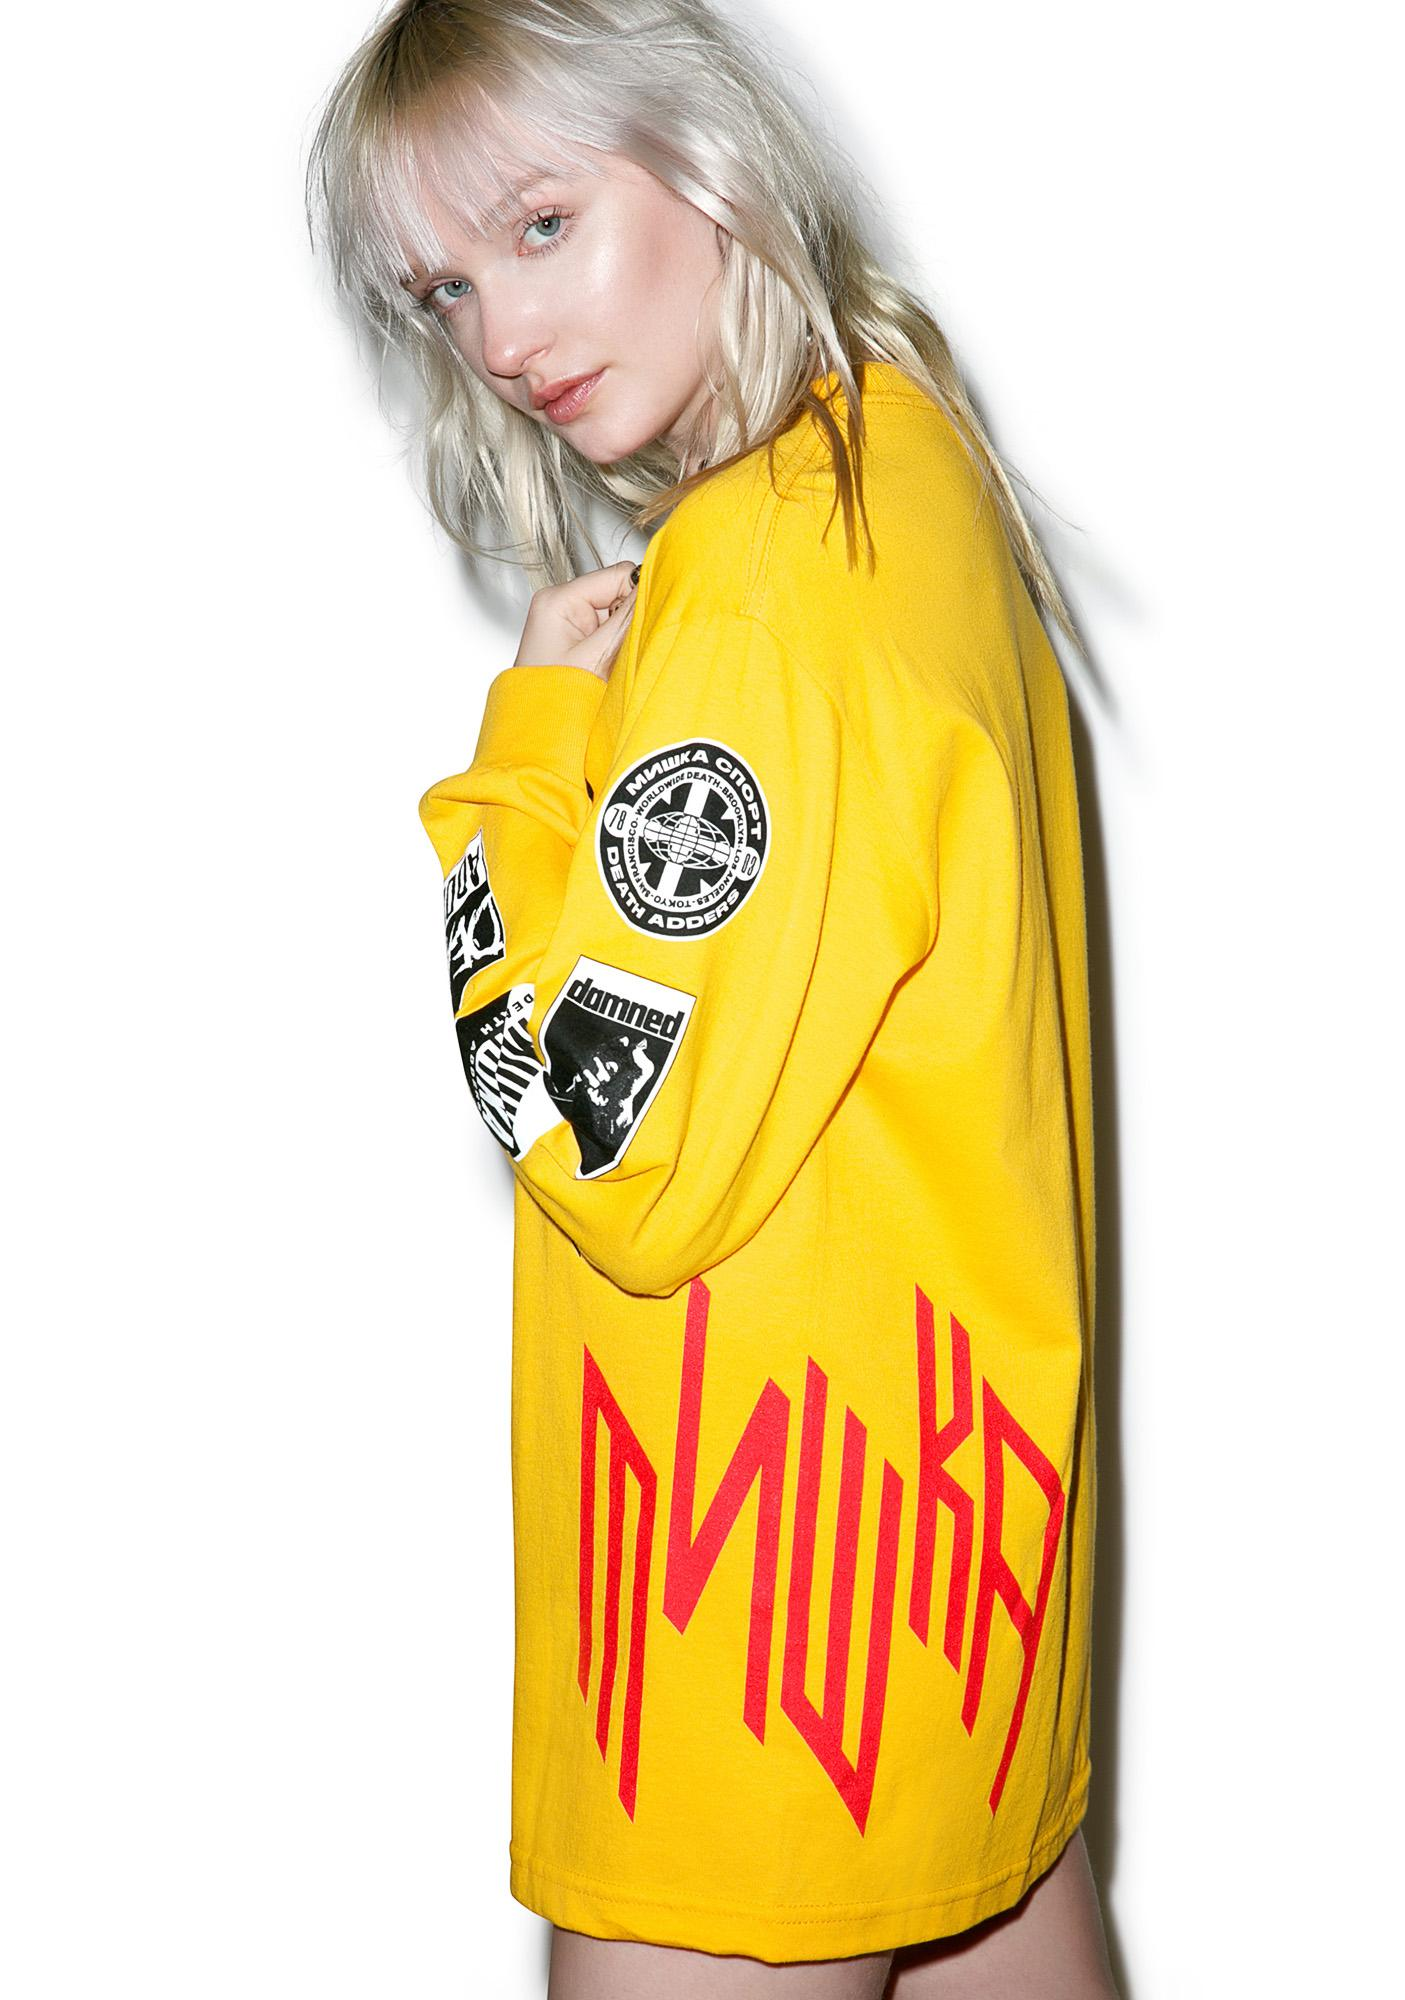 Mishka Nation Of Millions Longsleeve Tee